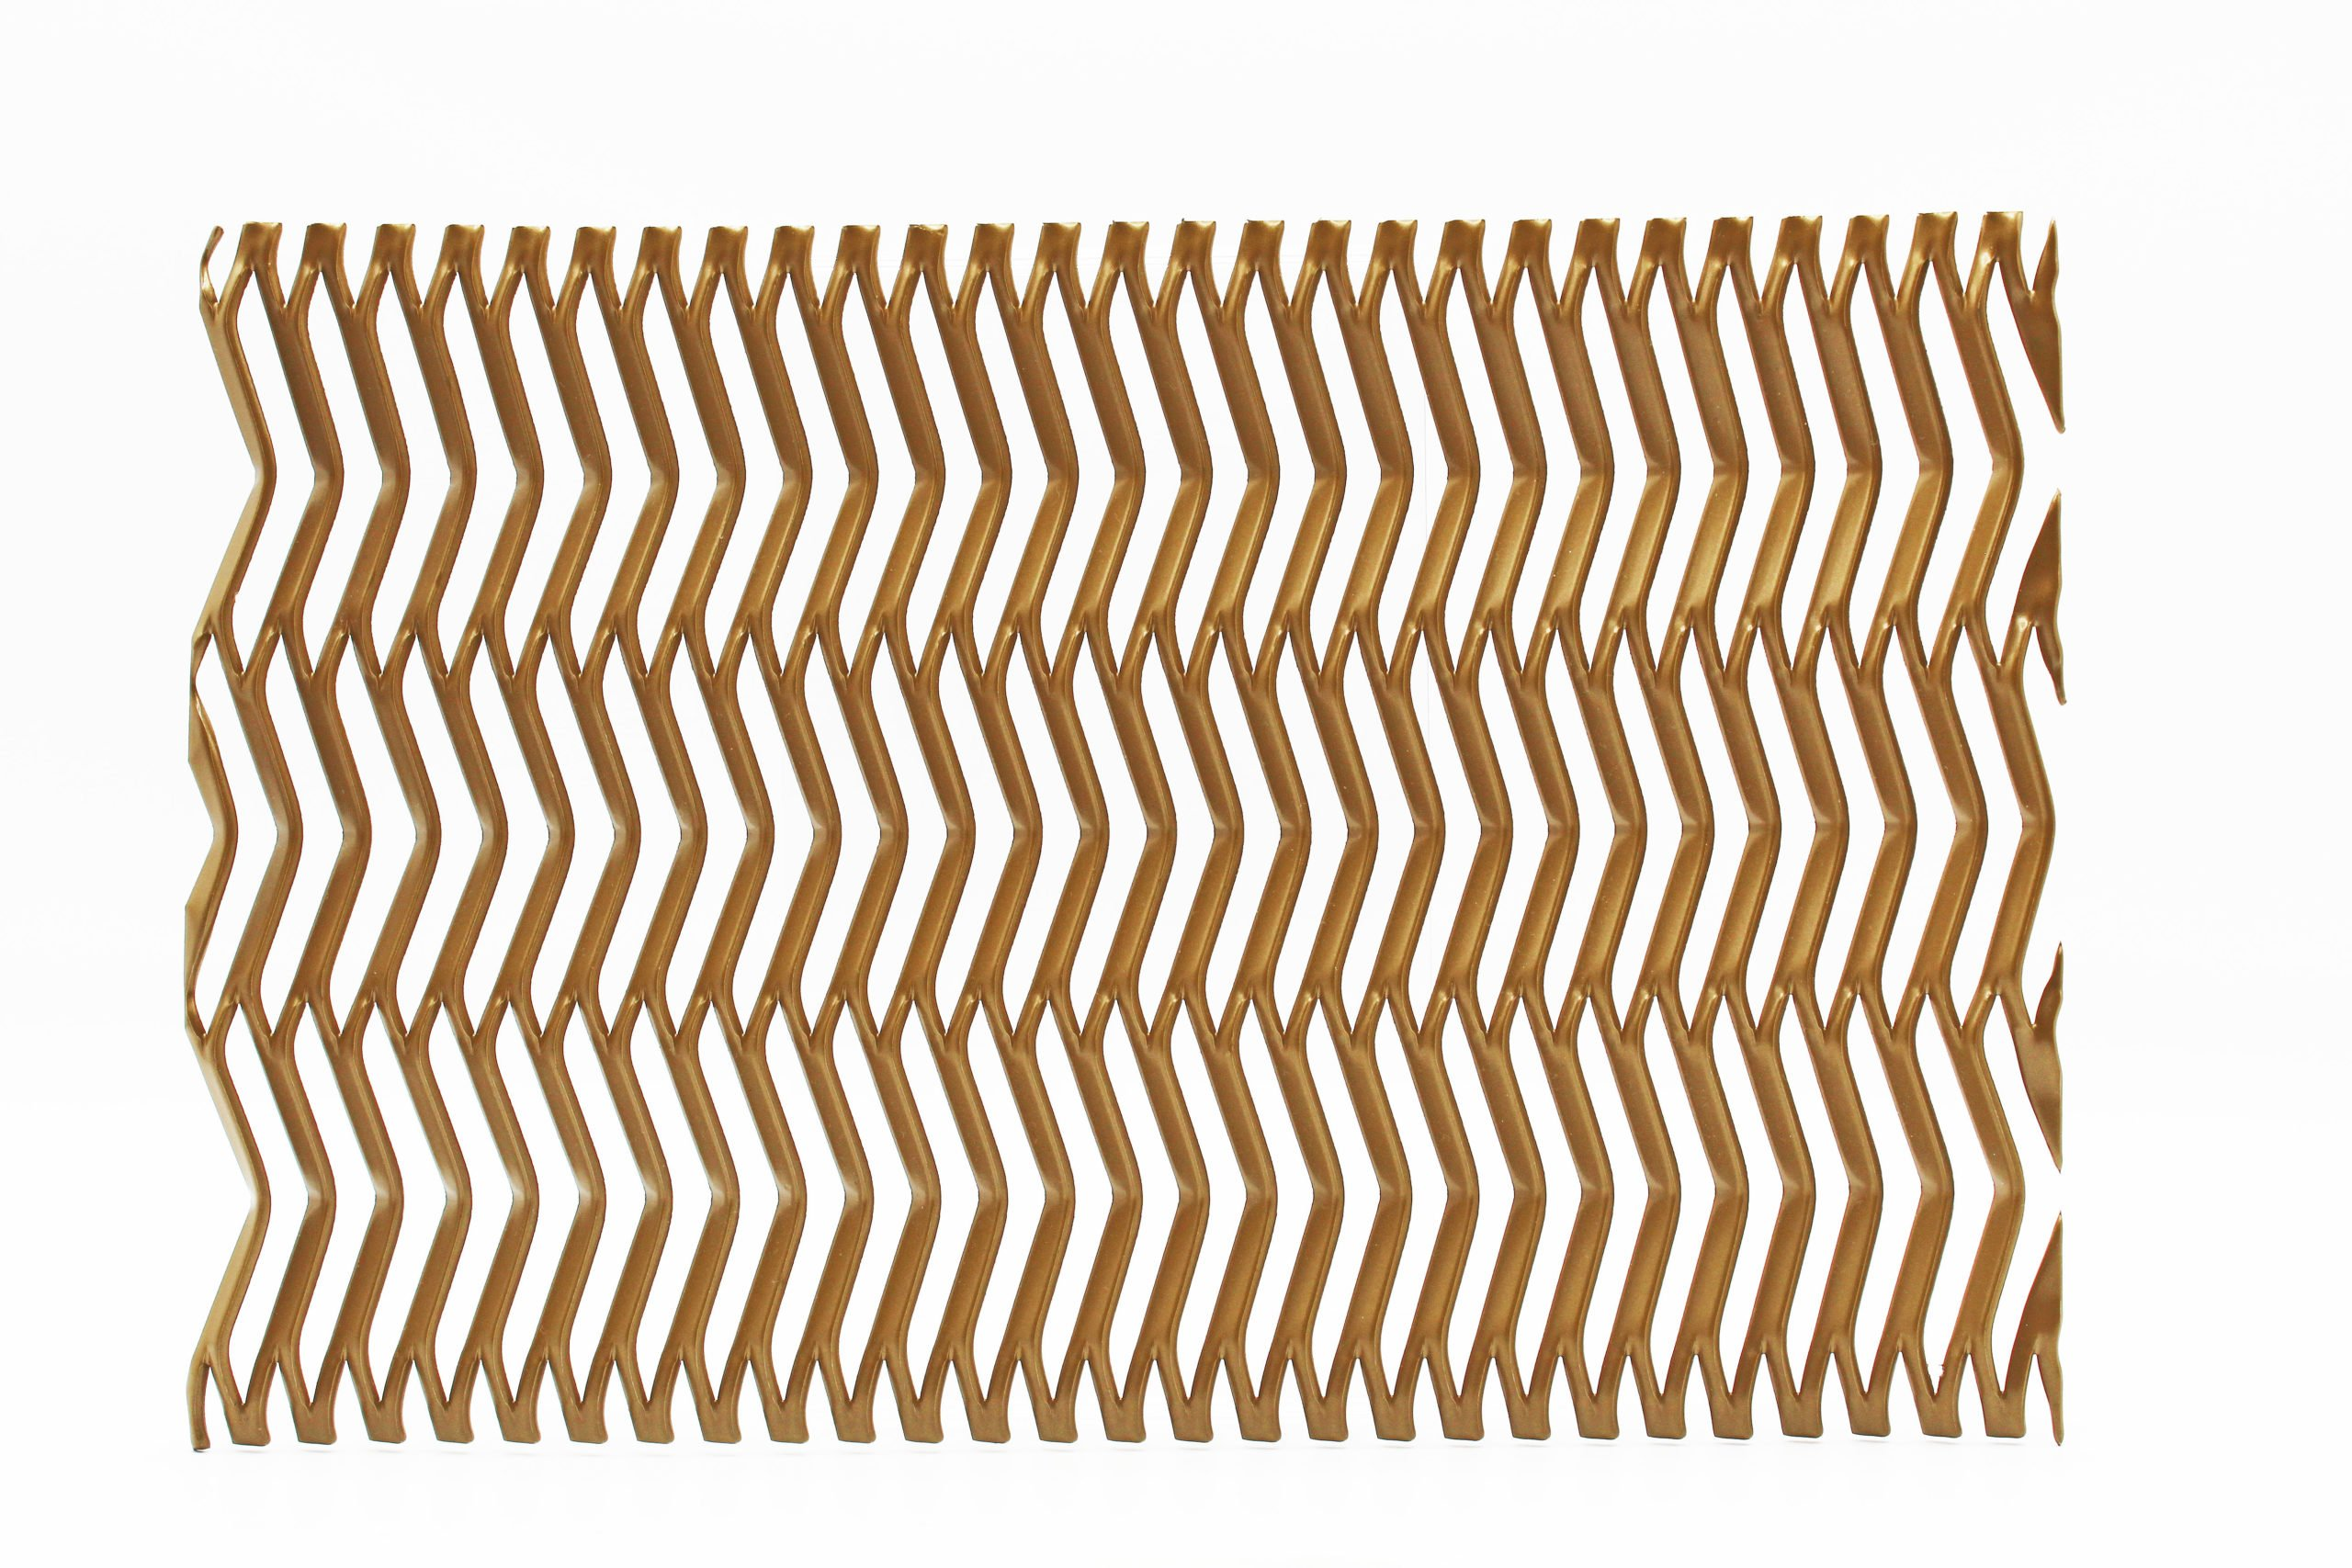 malin gold expanded architectural mesh